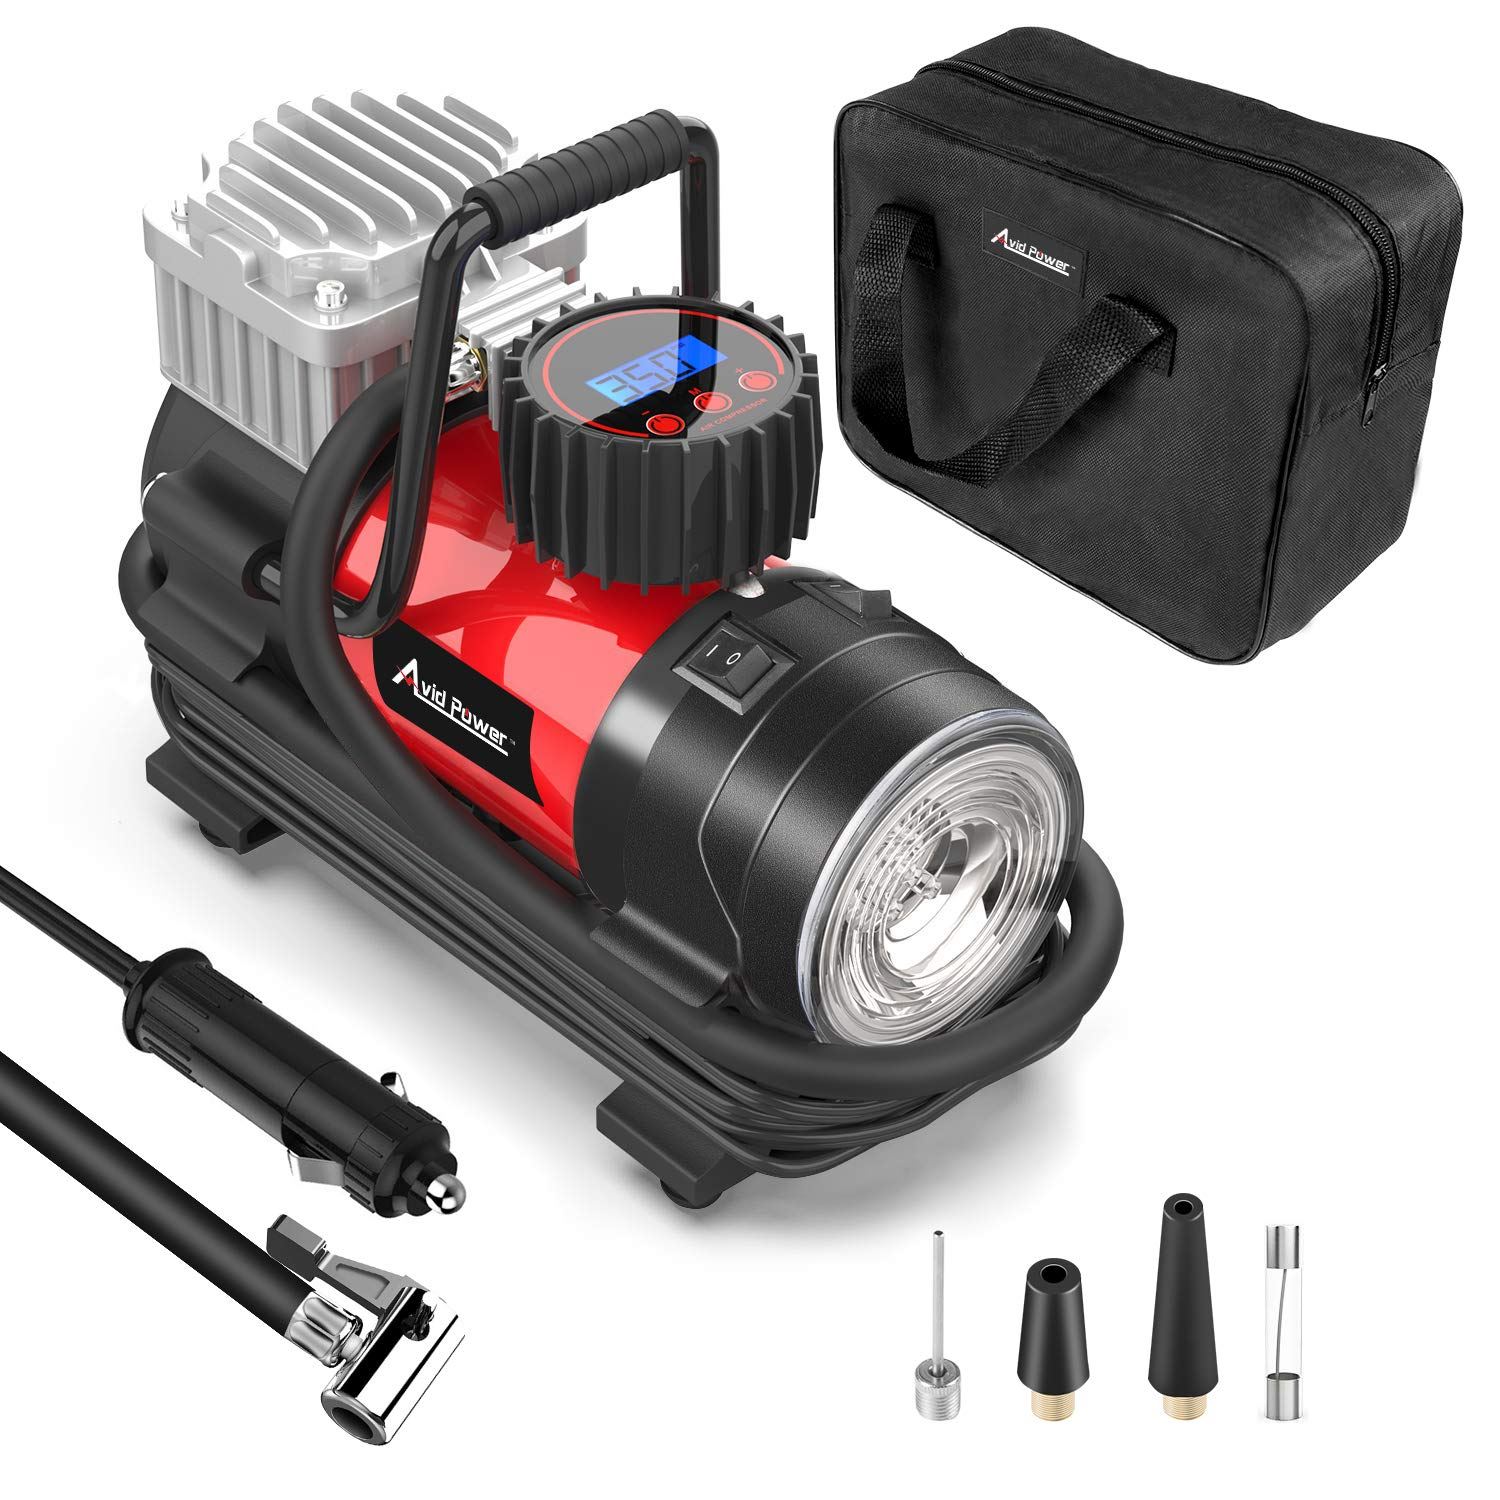 Tire Inflator Pump, Portable Air Compressor 12V 150 PSI with Digital Display Gauge, LED Flashlight, Overheat Protection, Extra Nozzle Adaptors, Avid Power